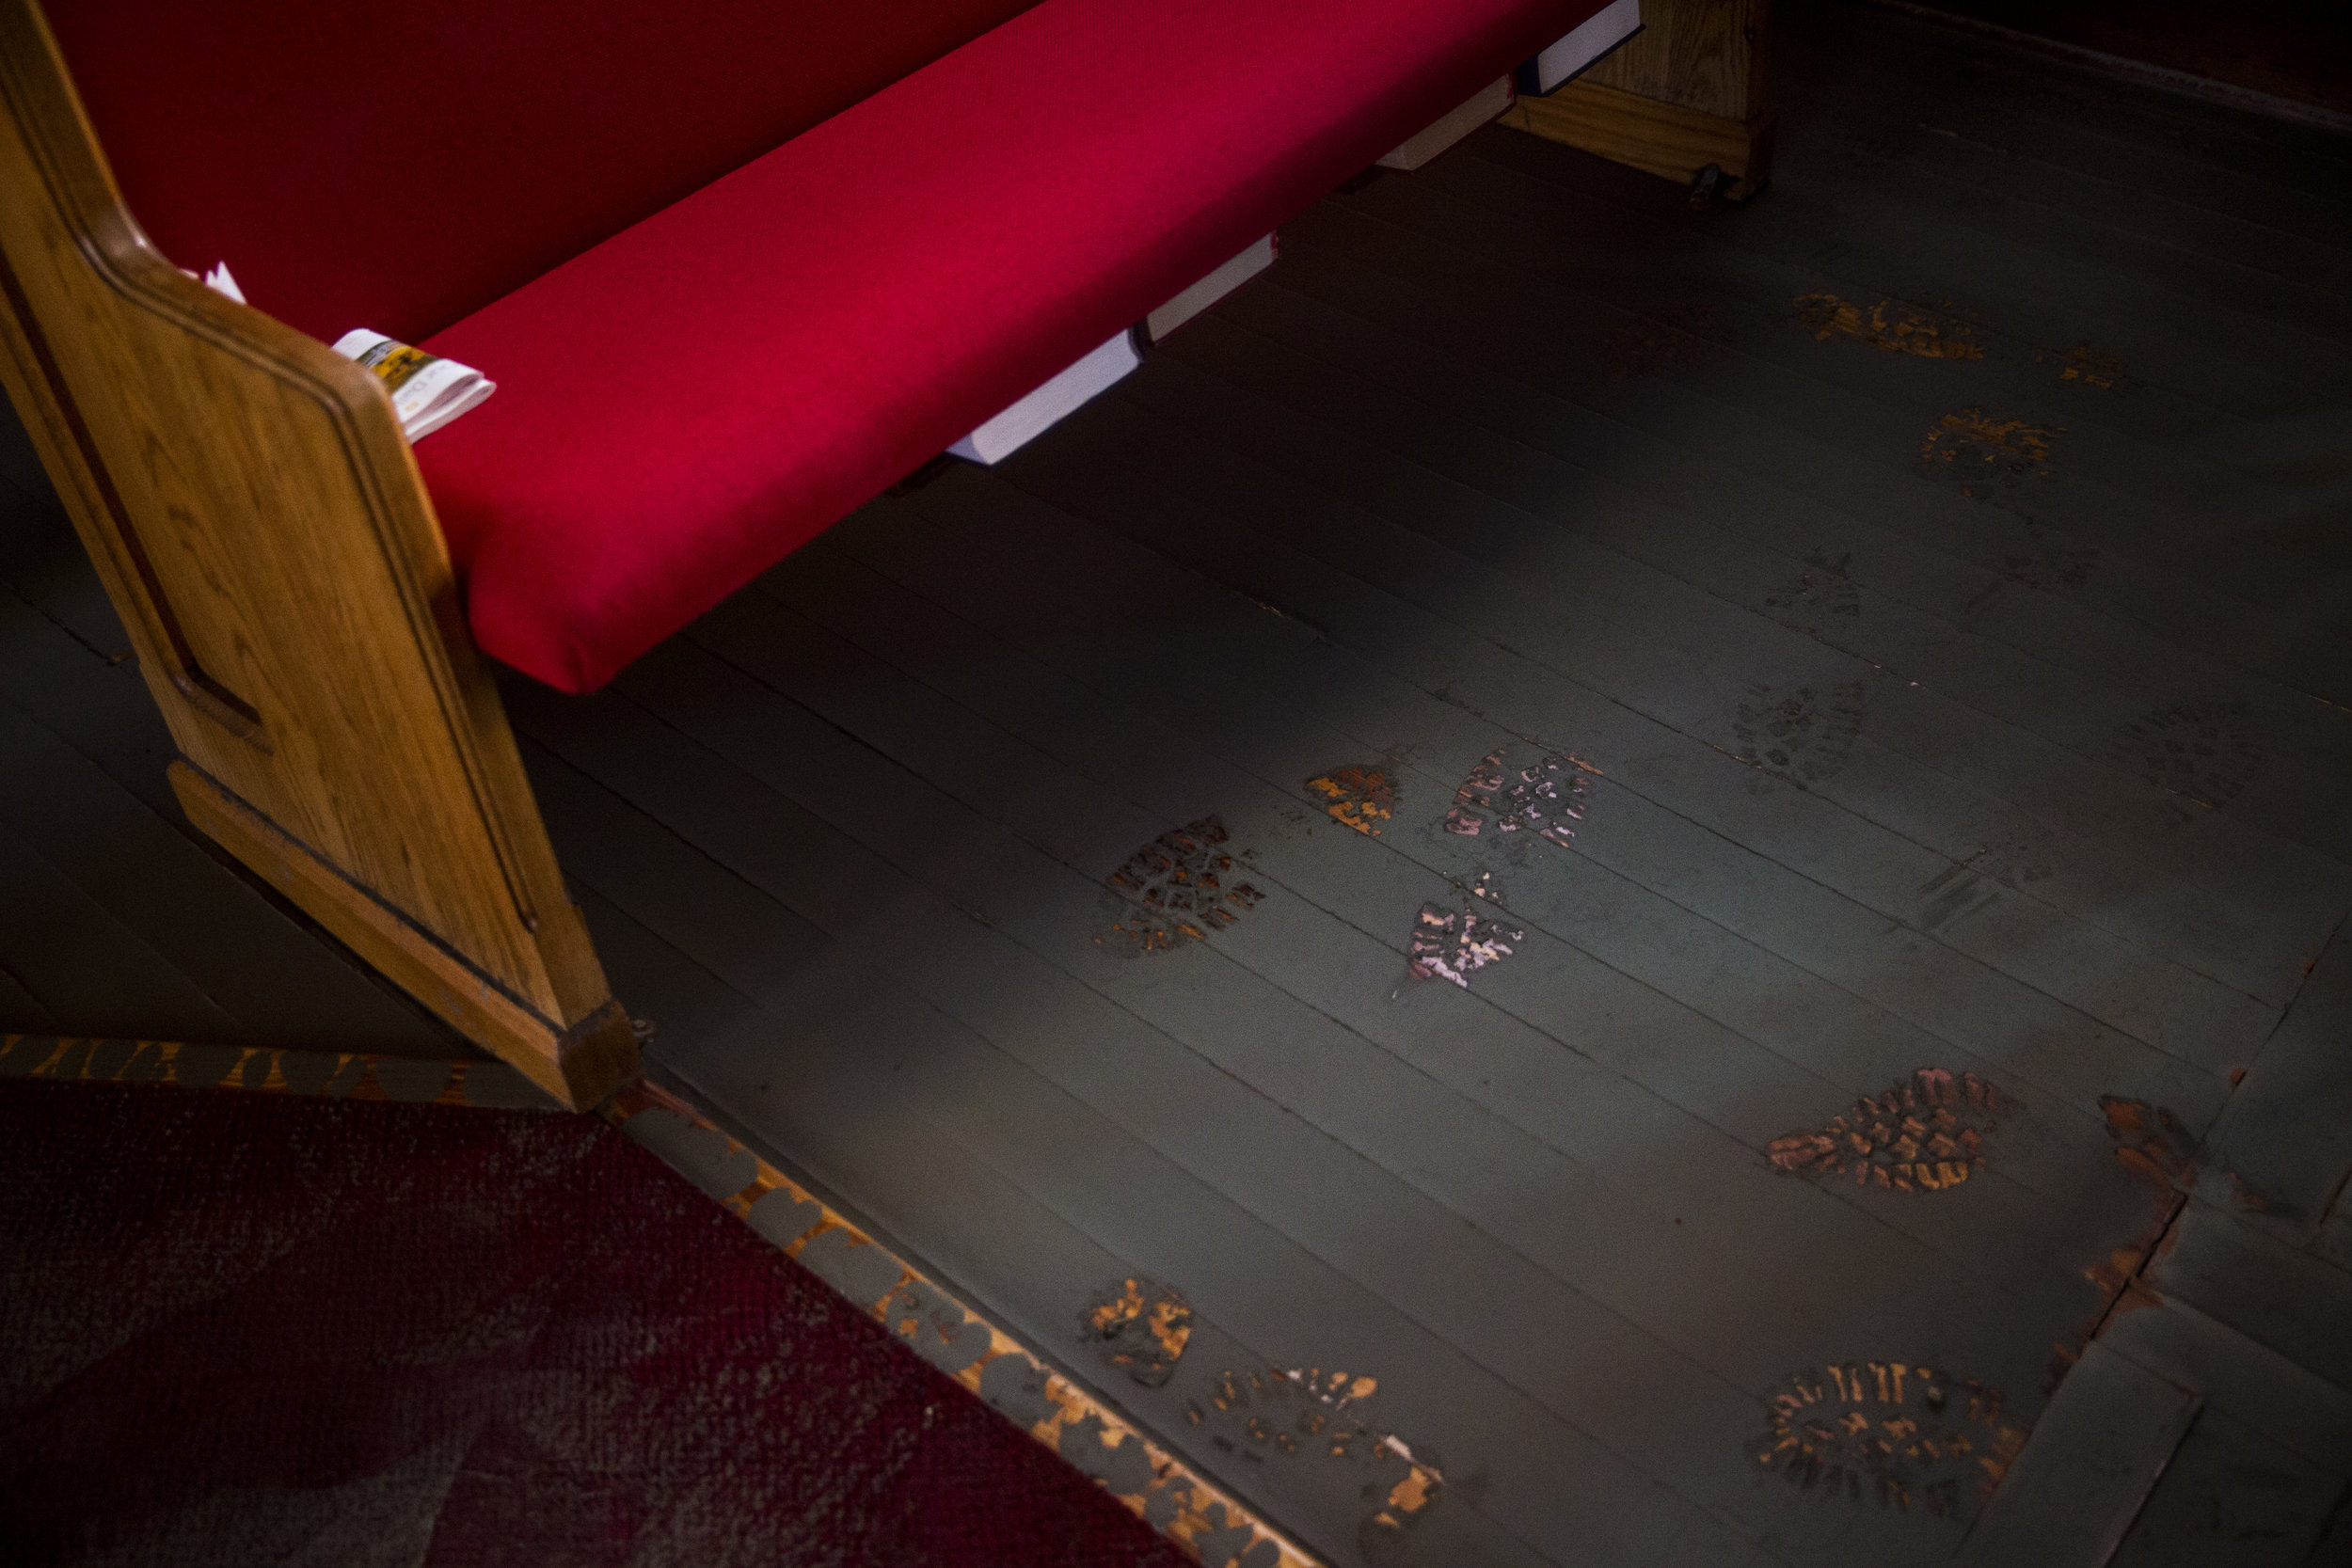 Boot tracks mark the dried mud on the floor of Everglades Community Church on Sunday, Sept. 17, 2017, one week after Hurricane Irma.